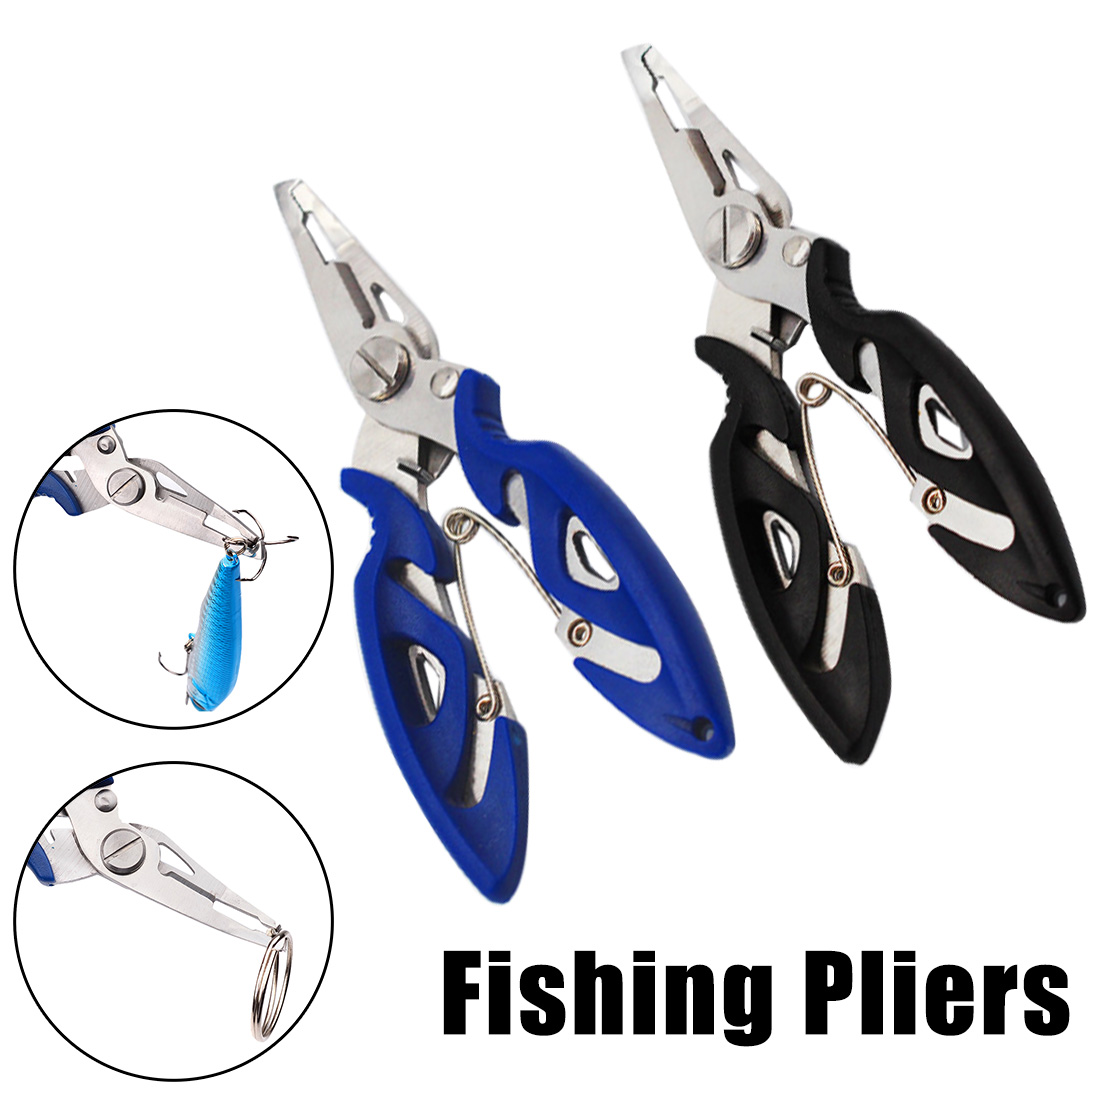 Pro Fishing Multifunctional Plier Fishing Lanyards Boating Ropes Kayak Camping Secure Pliers Lip Grips Tackle Fish Tools